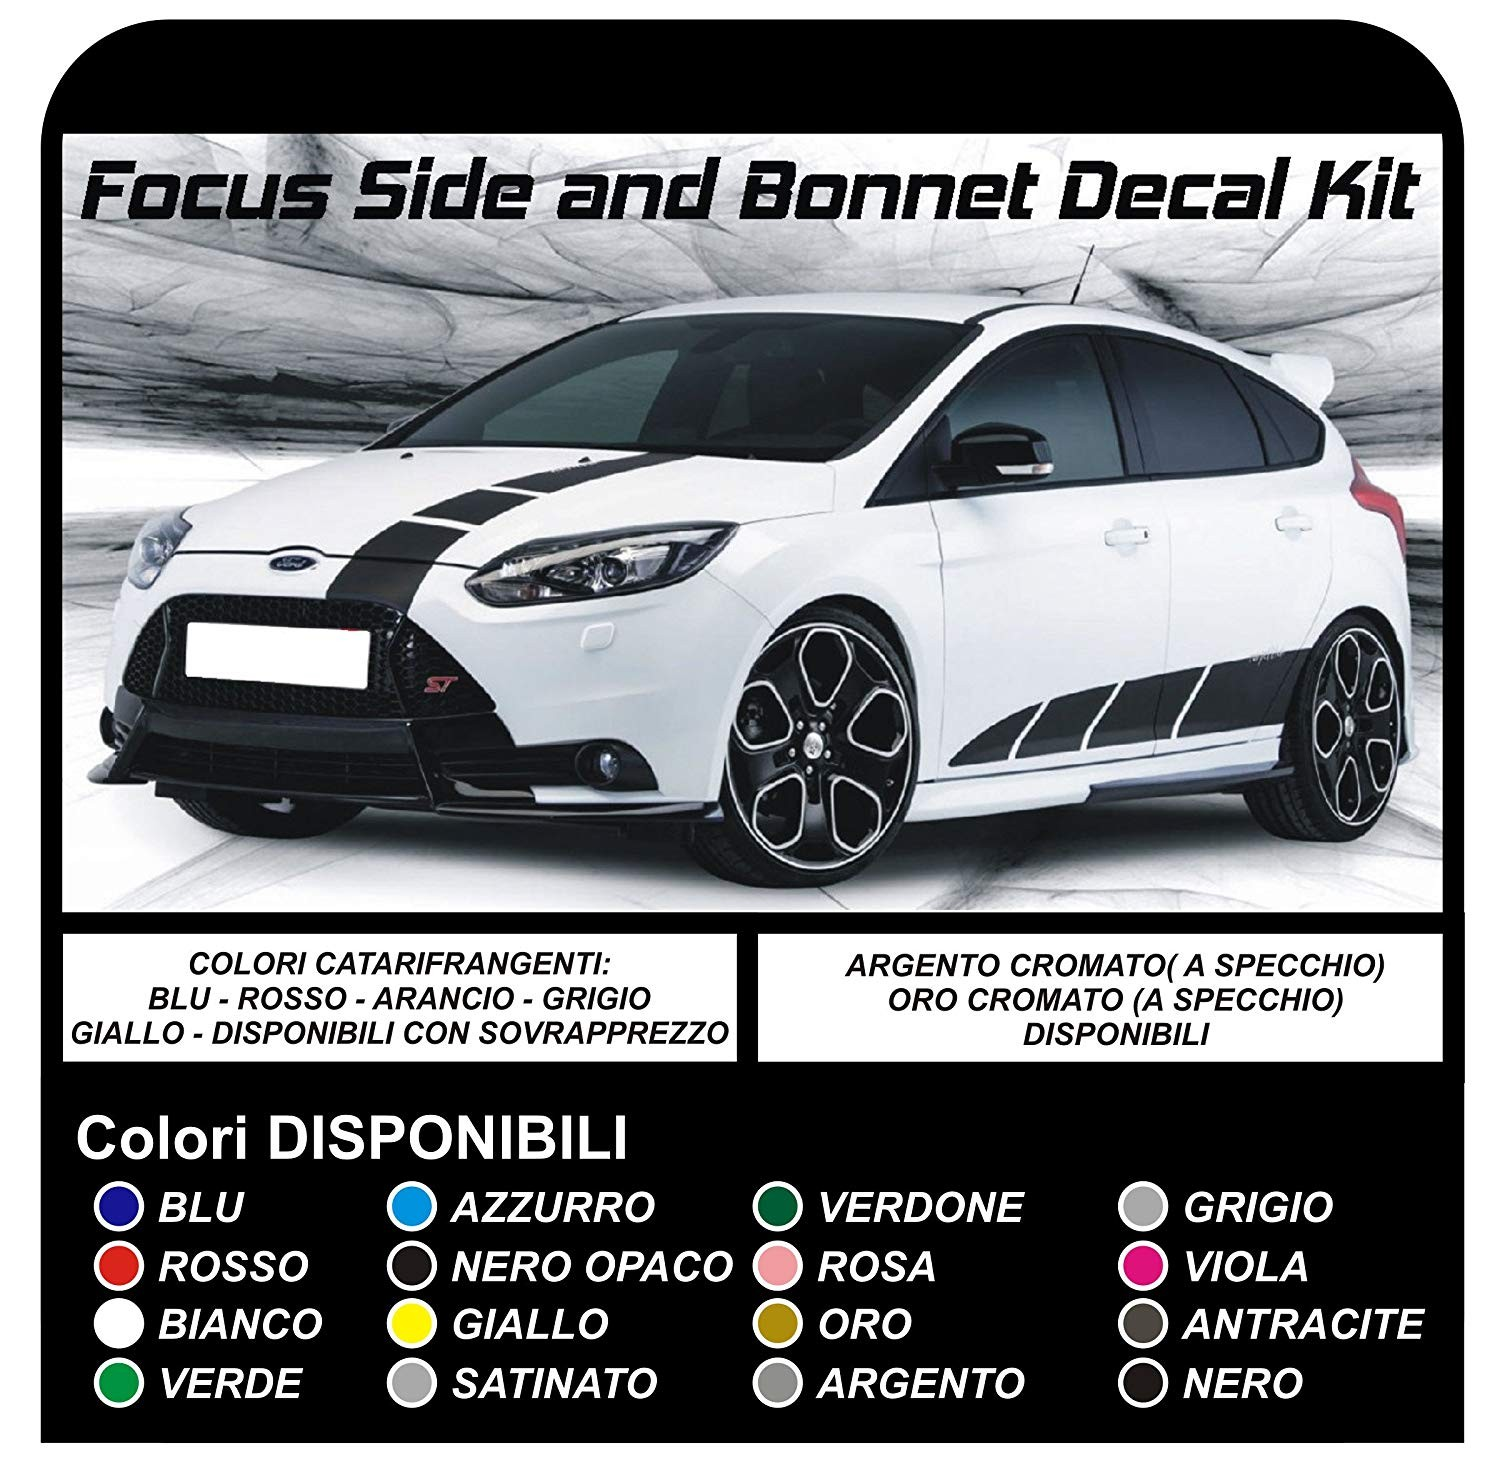 Stickers For Ford Focus St Mk3 Complete Kit Adhesive Stripes To The Side And The Hood The New Focus Turbo Rs 1 6 1 8 2 0